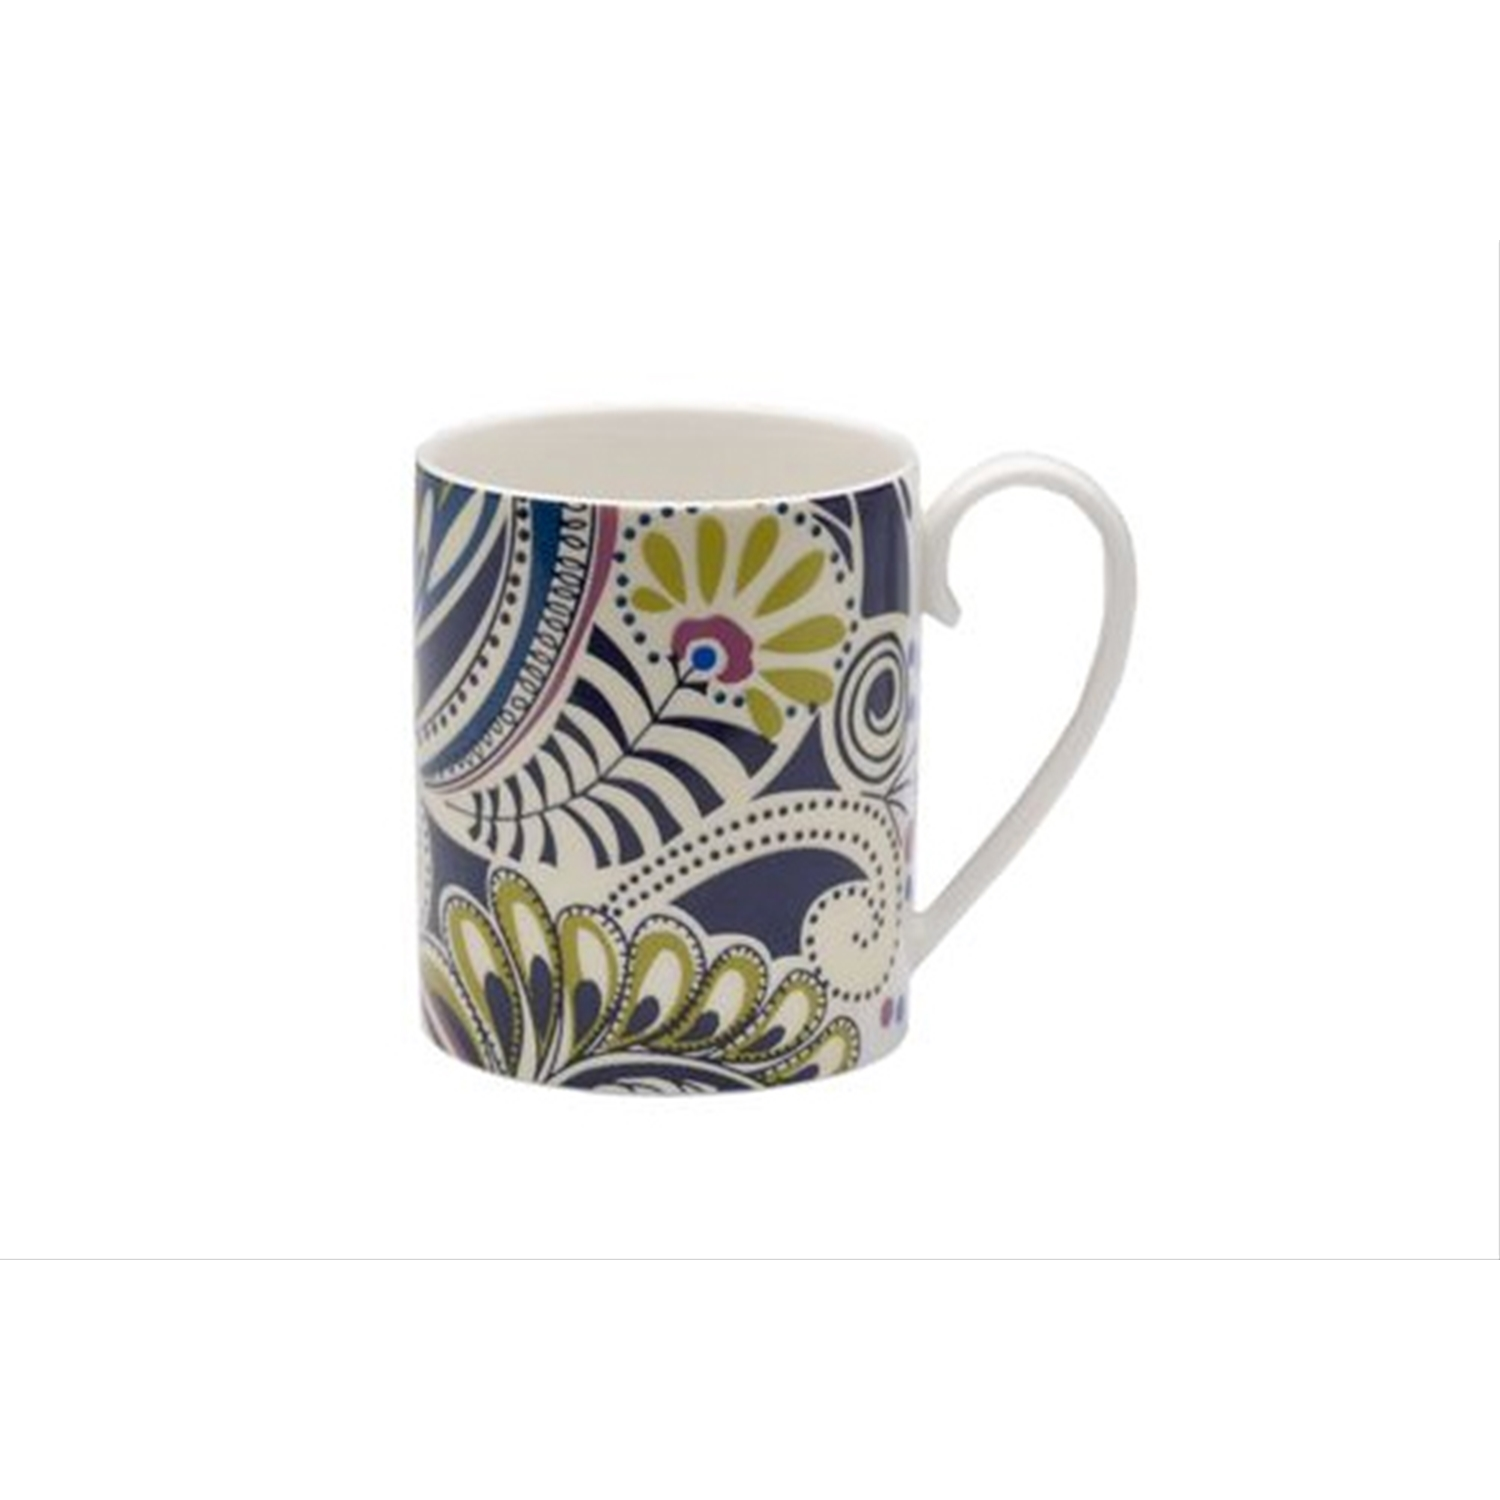 Image of Monsoon By Denby Cosmic Can Mug